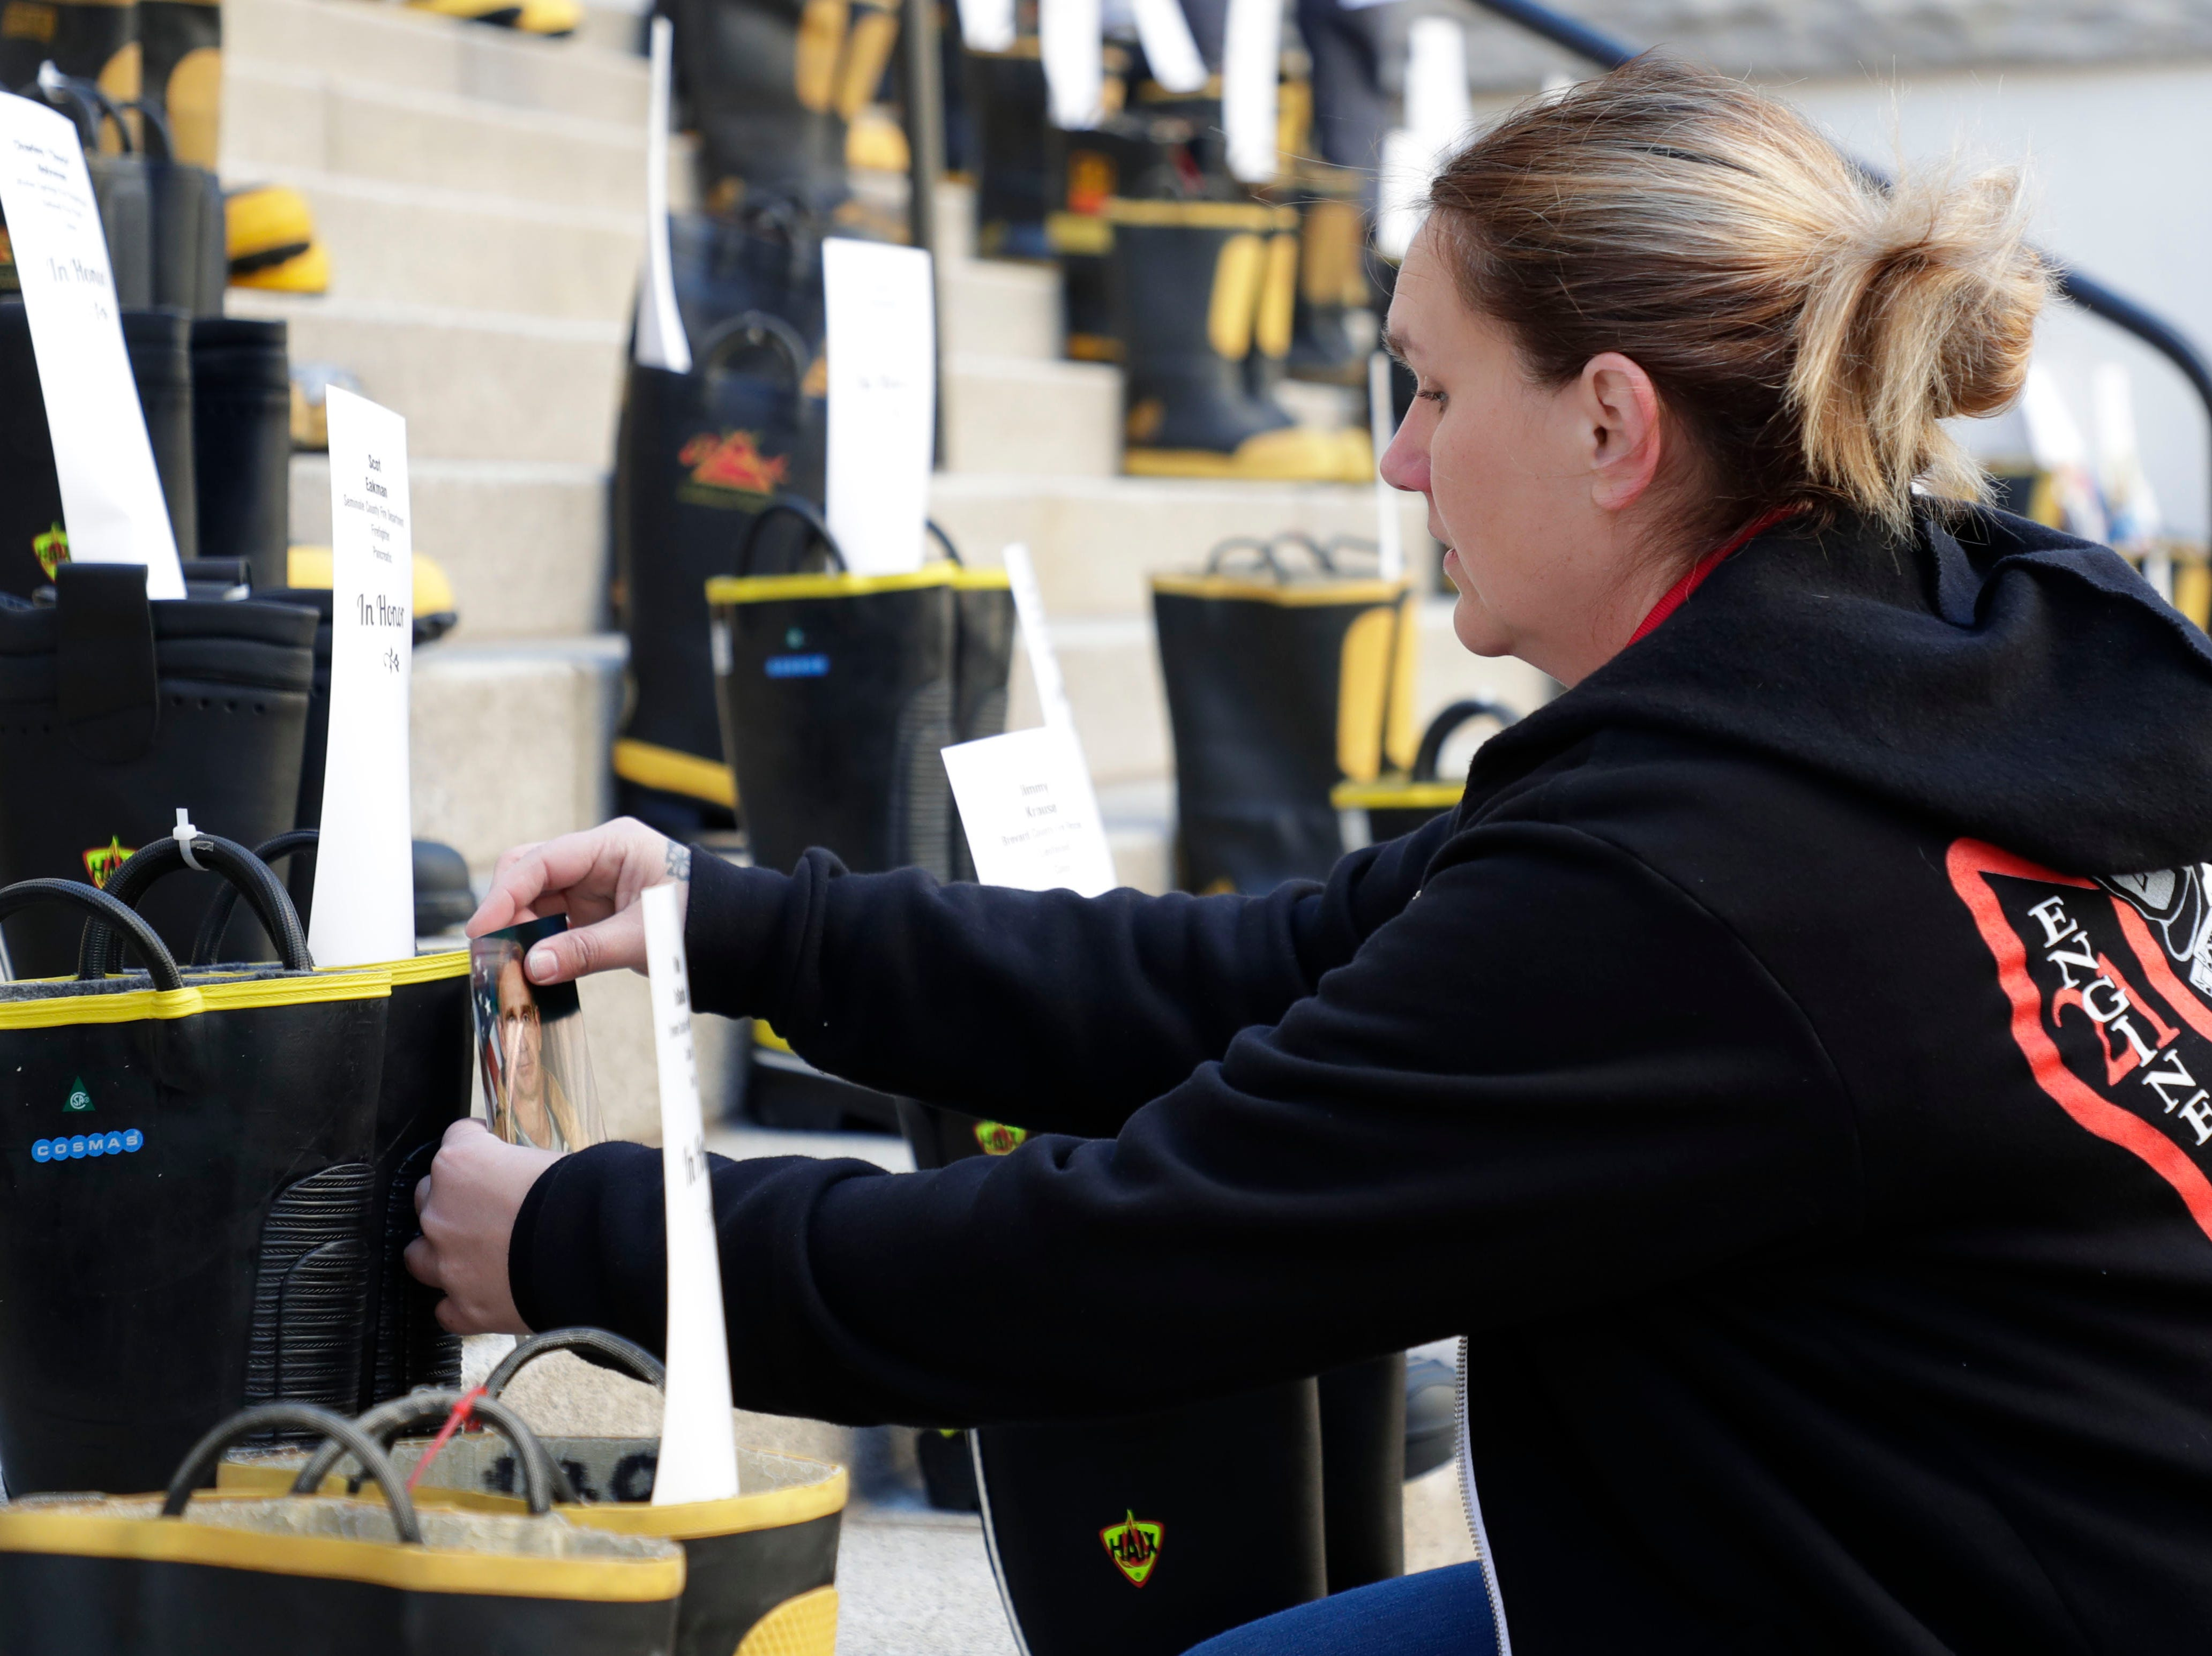 Jazz Zombo, a woman who works with Seminole County Professional Firefighters Local 3254, places a card in a boot honoring a firefighter who battled cancer. Firefighters and their families from around the state create a display at the Capitol of 500 pairs of boots in honor of firefighters who lost their battle or are battling with cancer caused from smoke inhalation and carcinogens Thursday, March 7, 2019. The state of Florida is one of five states in the country that does not have a bill acknowledging cancer is a job-related illness.